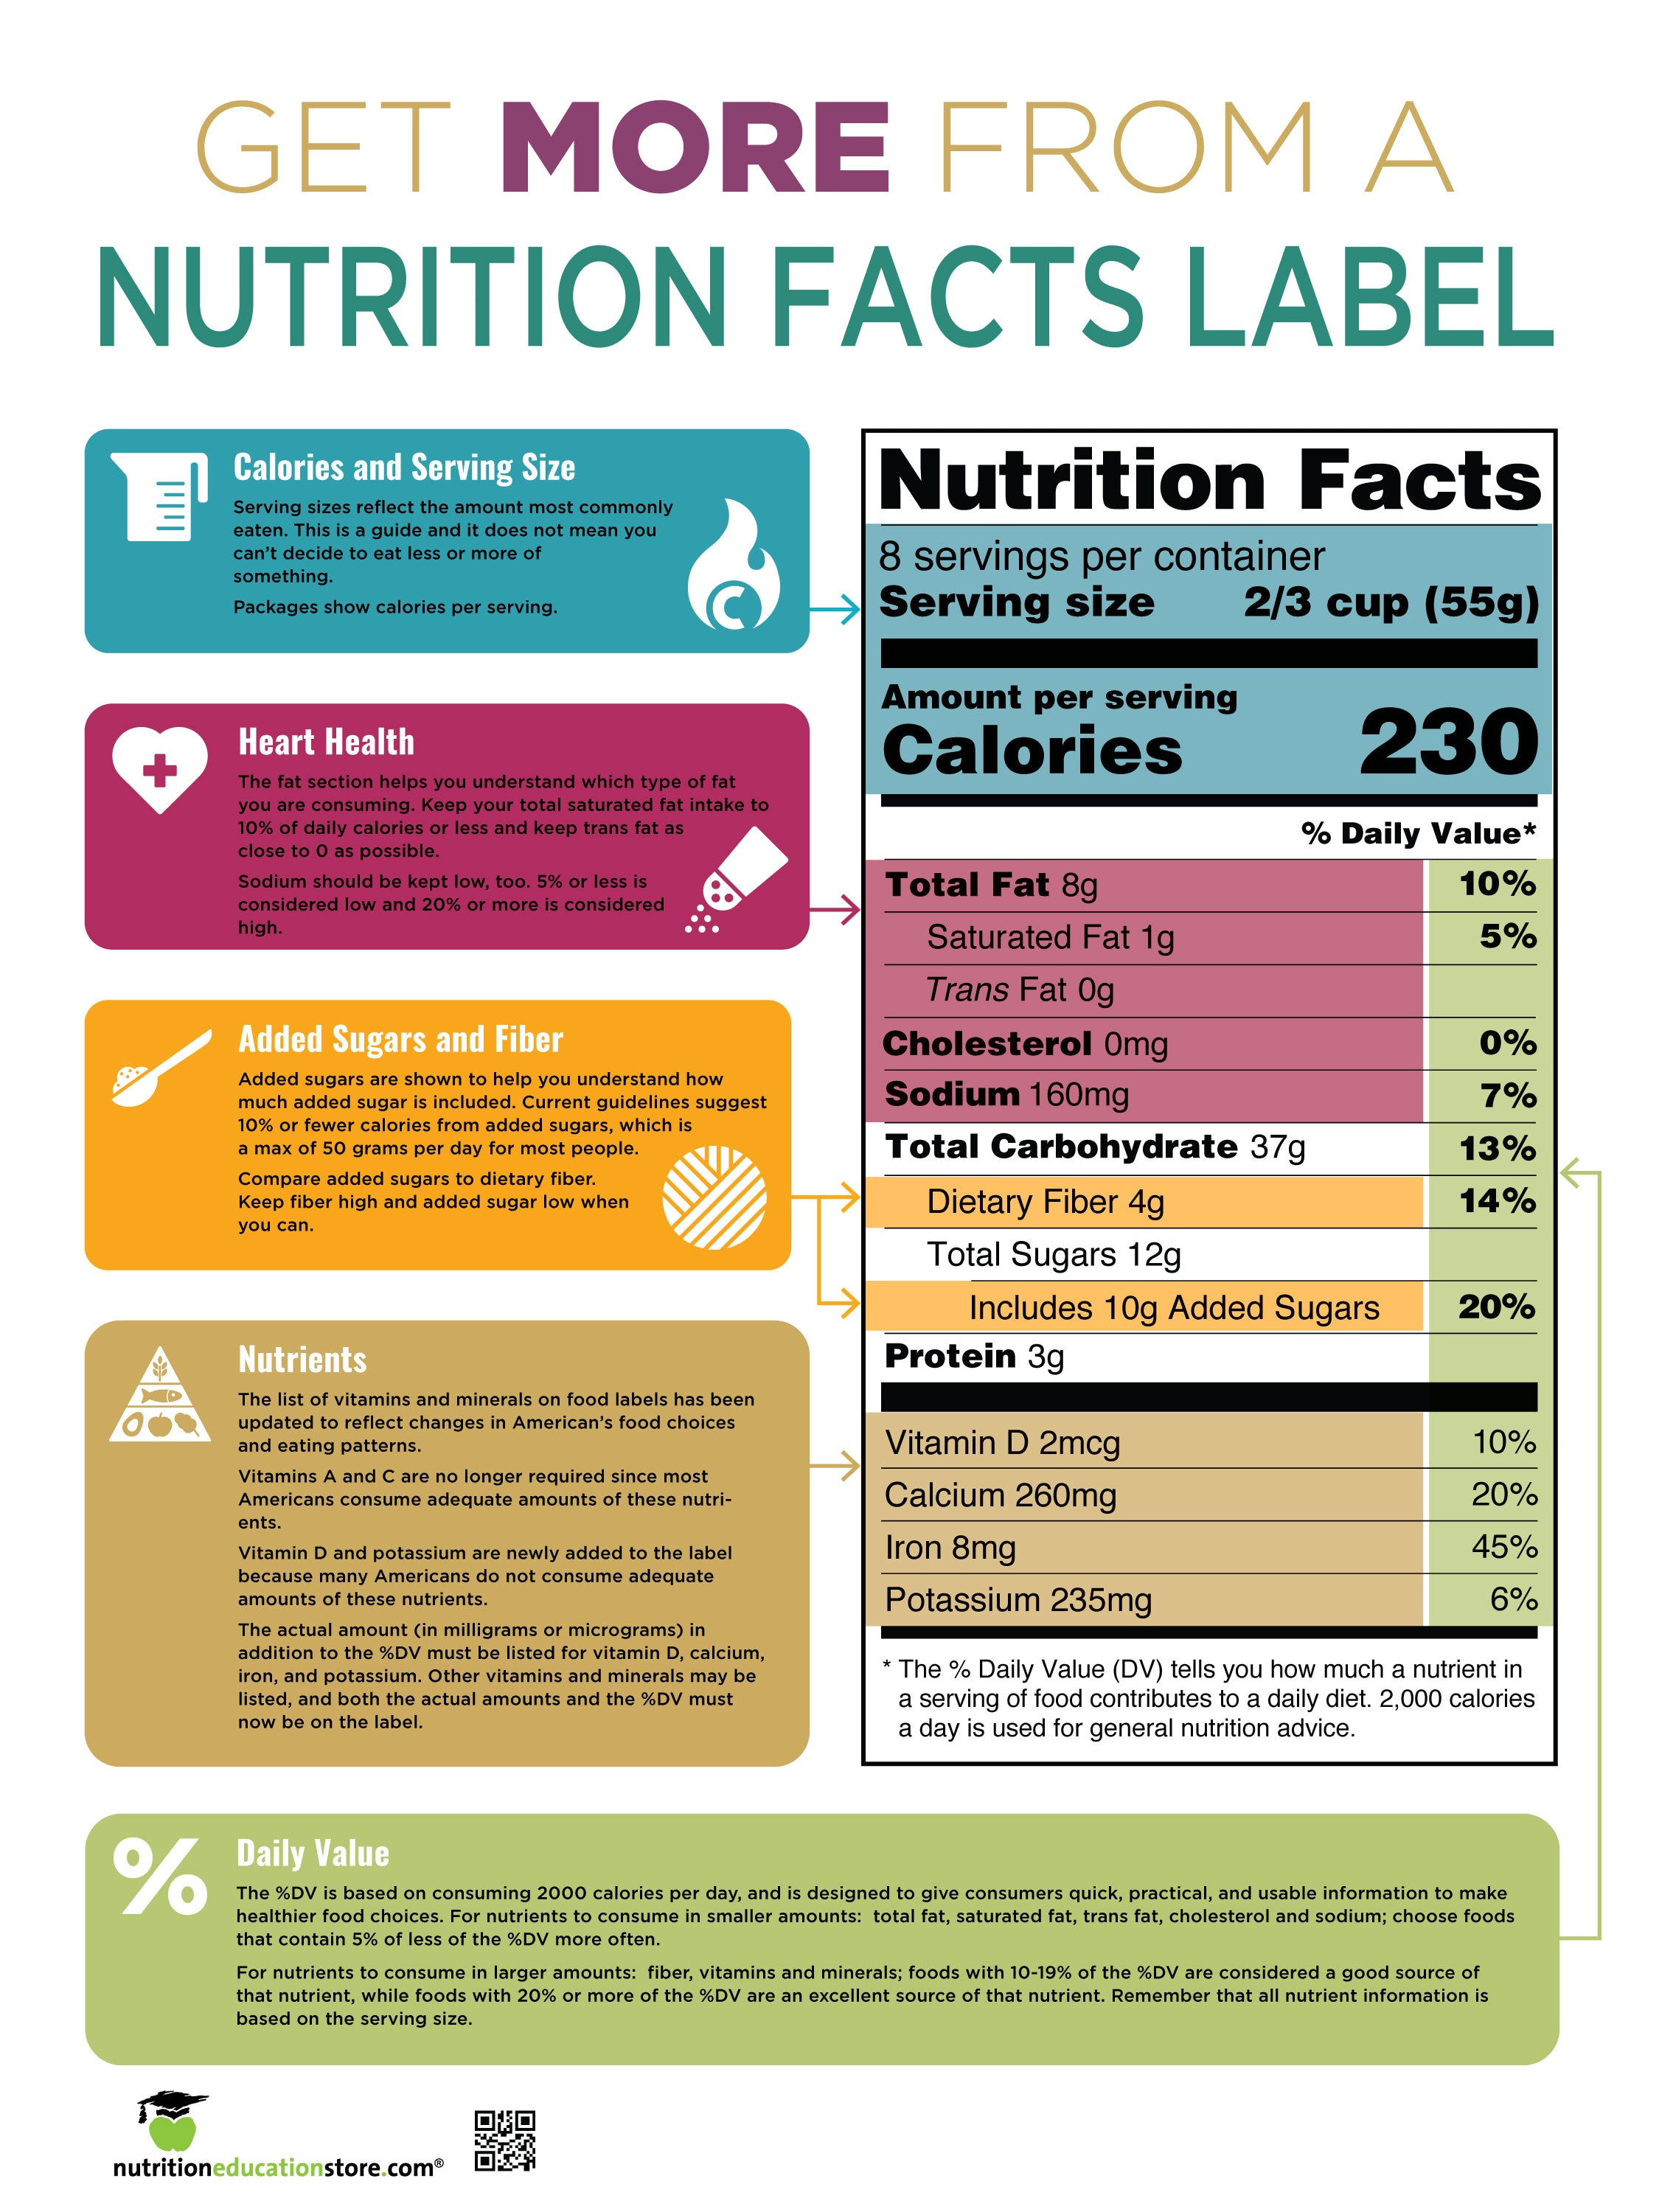 "Get More From the Food Label Poster - Nutrition Facts Panel Education Poster - 18"" x 24"" Laminated - Nutrition Education Store"